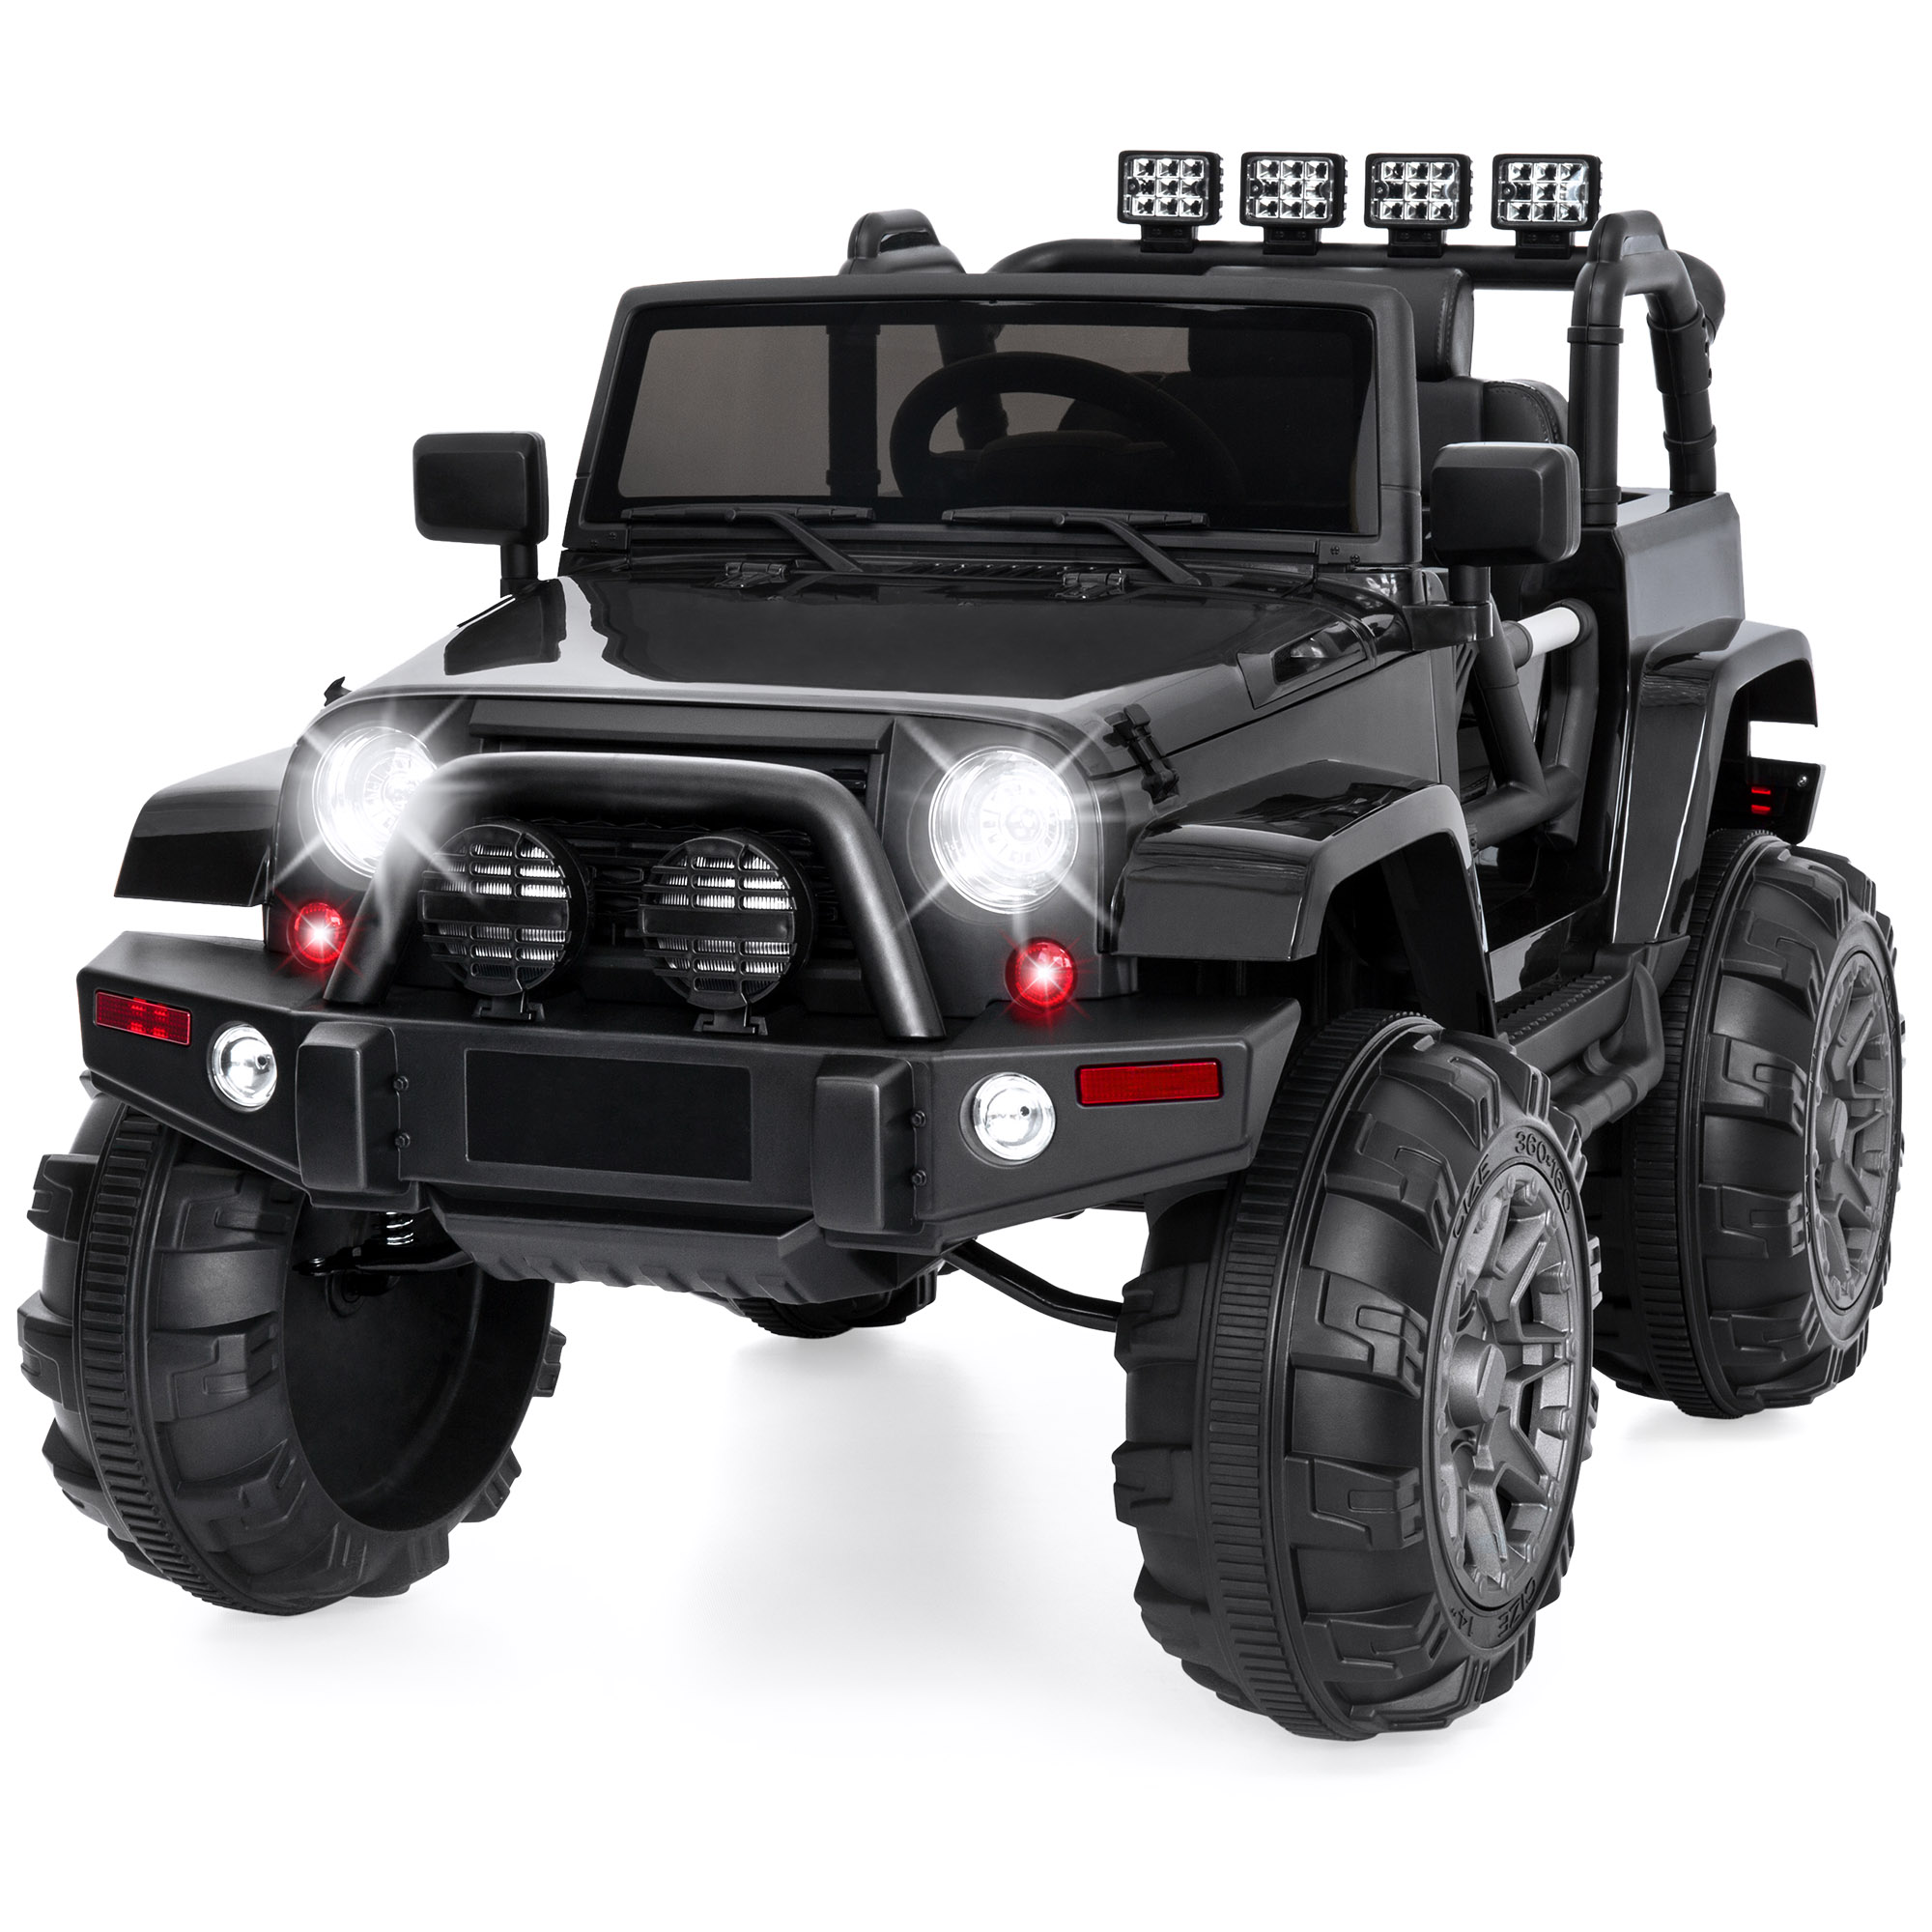 Best Choice Products 12V Kids Ride On Truck Car w/ Remote Control, 3 Speeds, Spring Suspension, LED Lights, AUX – Black